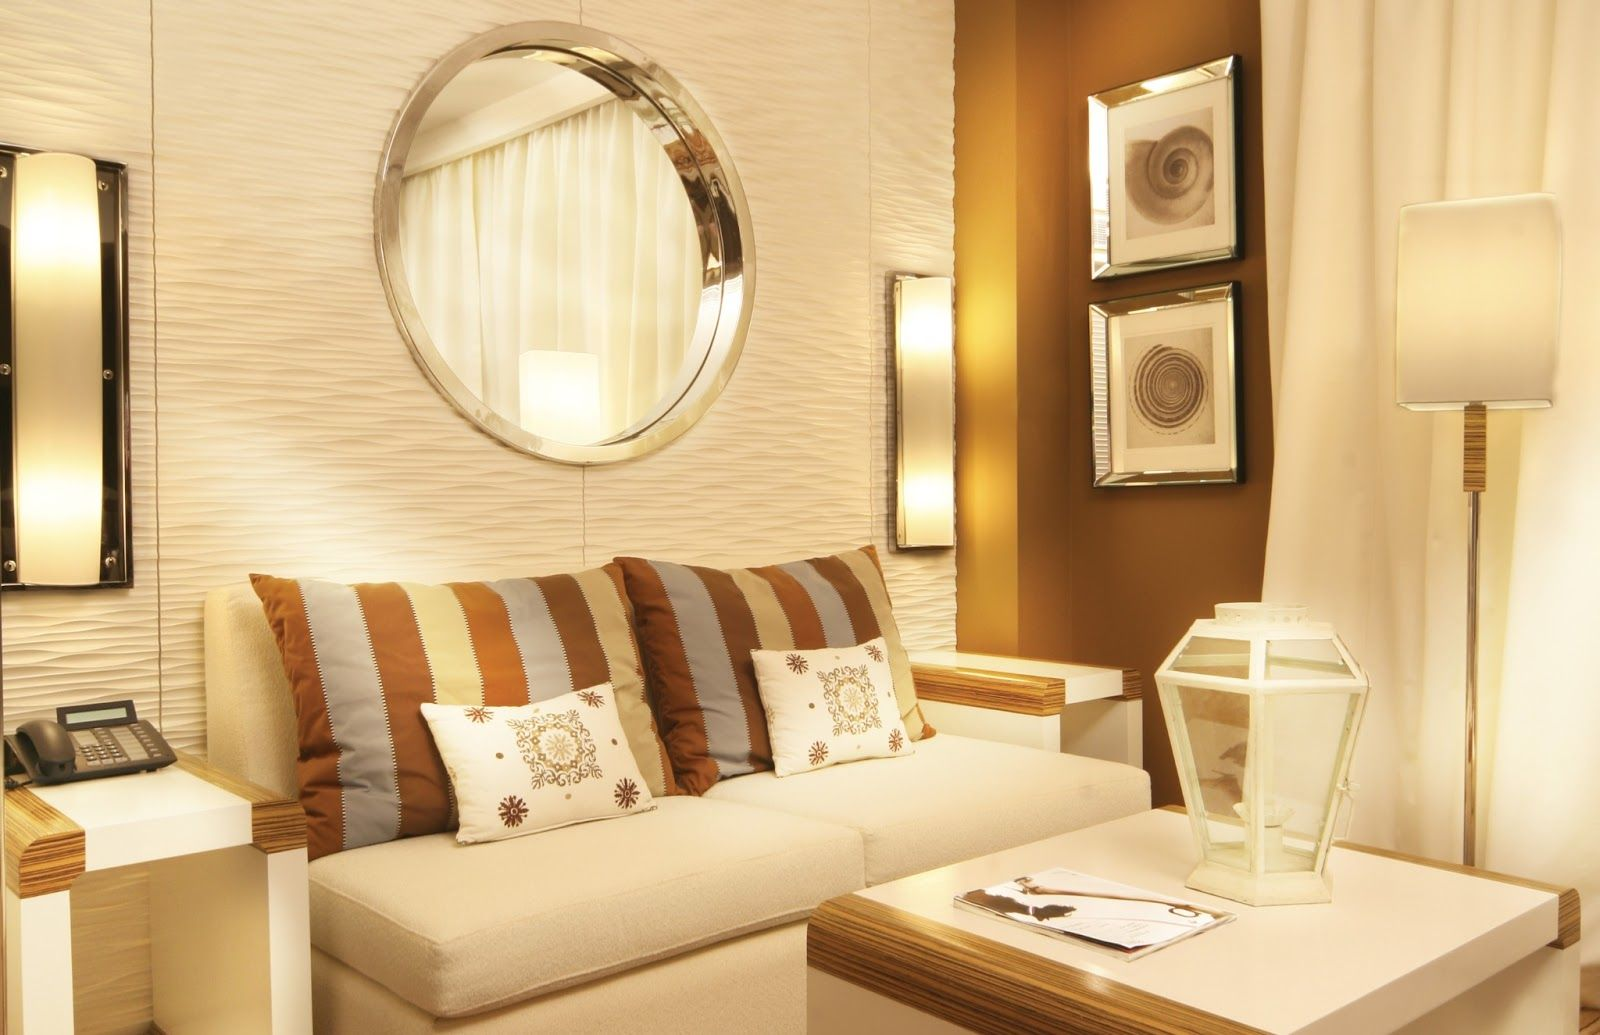 Small Living Room Design Colors 2014 Decorating Ideas For Small Living Quality Living Room Furniture Small Living Room Furniture Mirror Wall Living Room Living room colors 2014